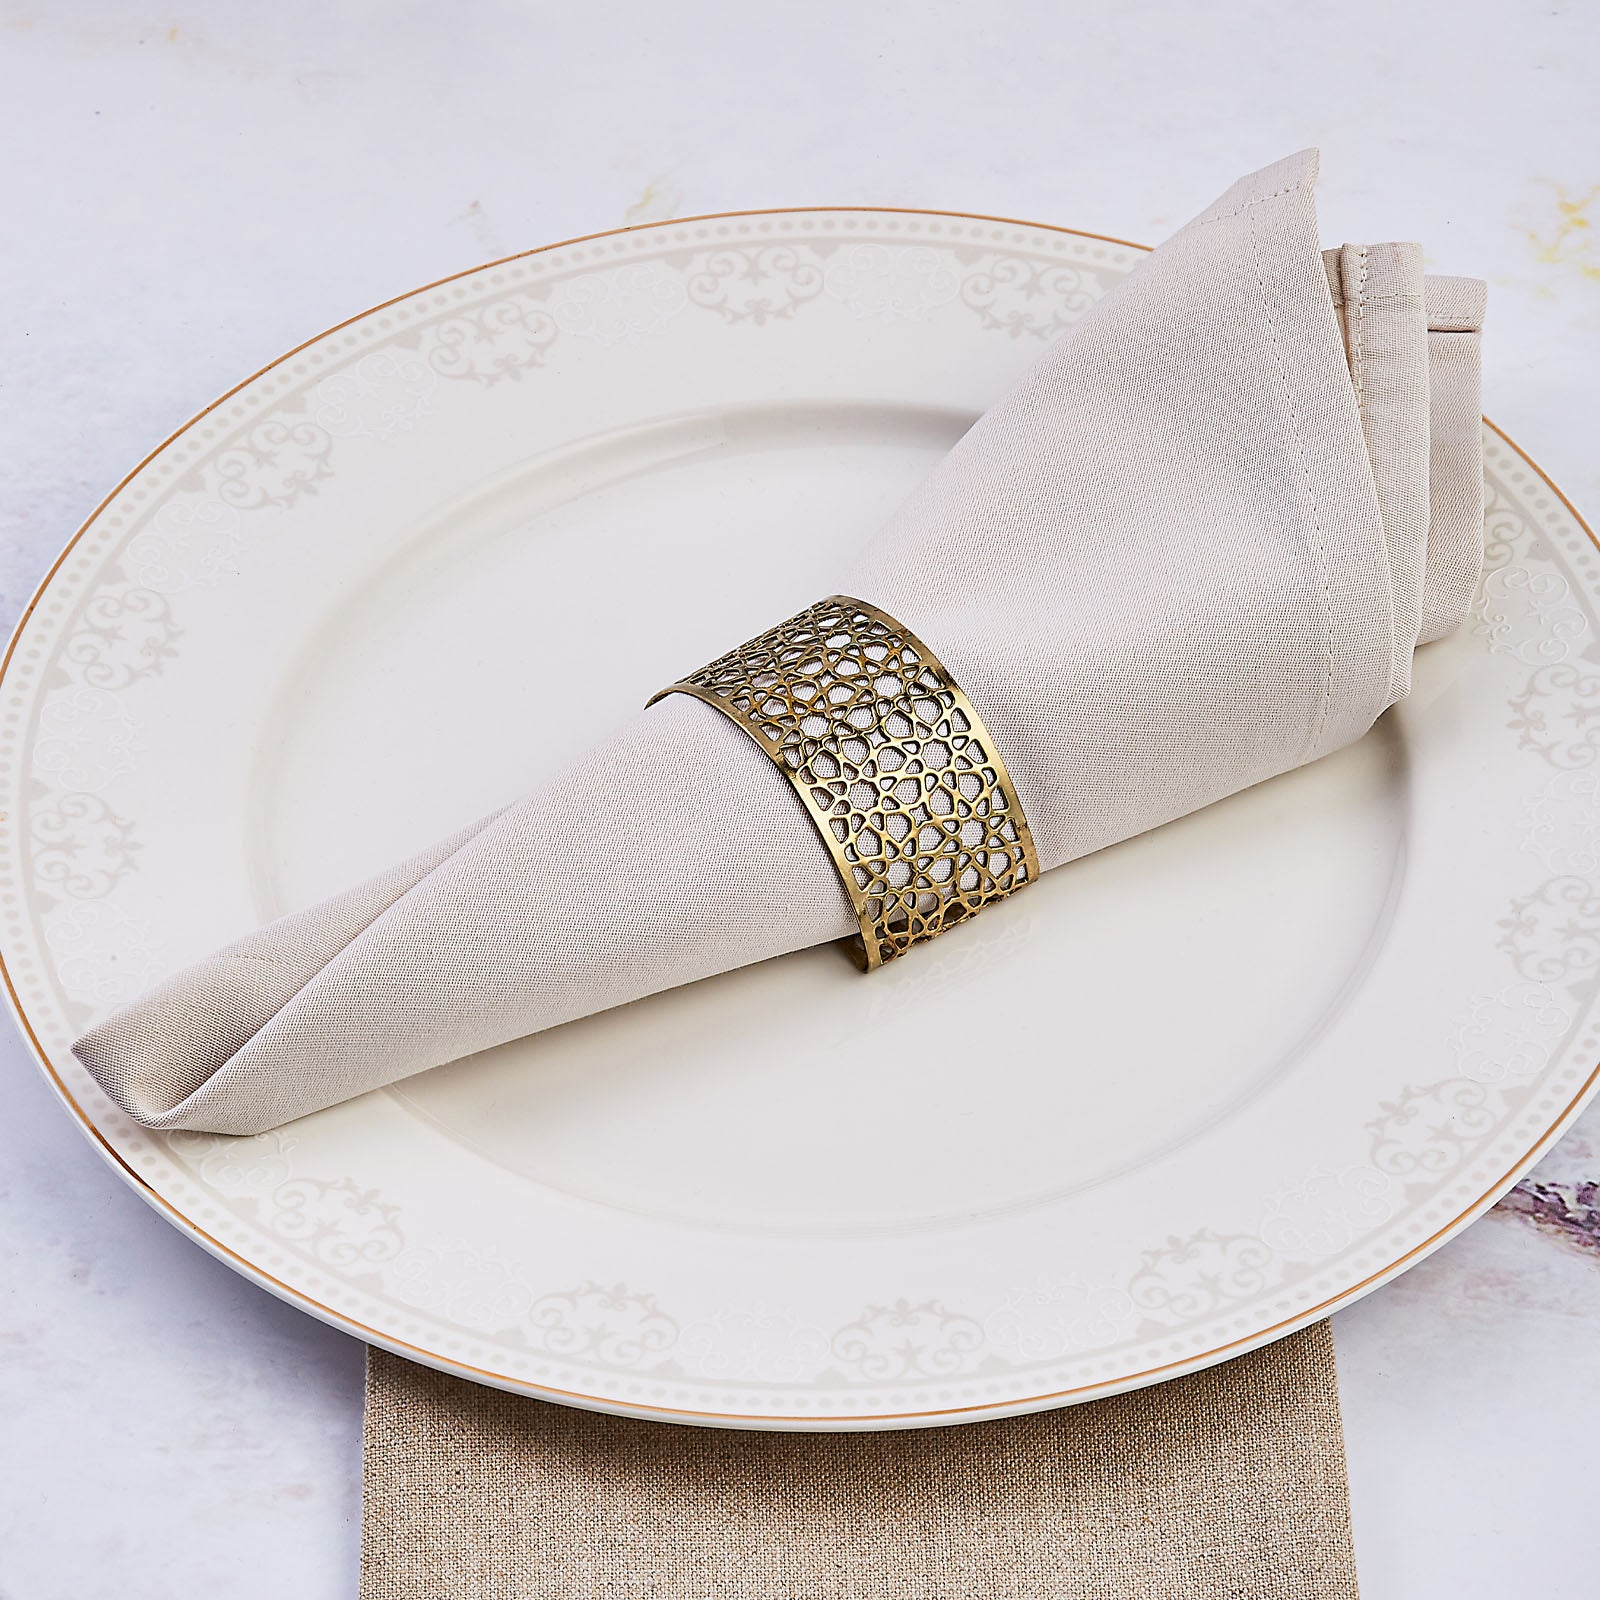 Karaca Seljuk Set of 6 Gold Small Napkin Rings 153.19.01.1488